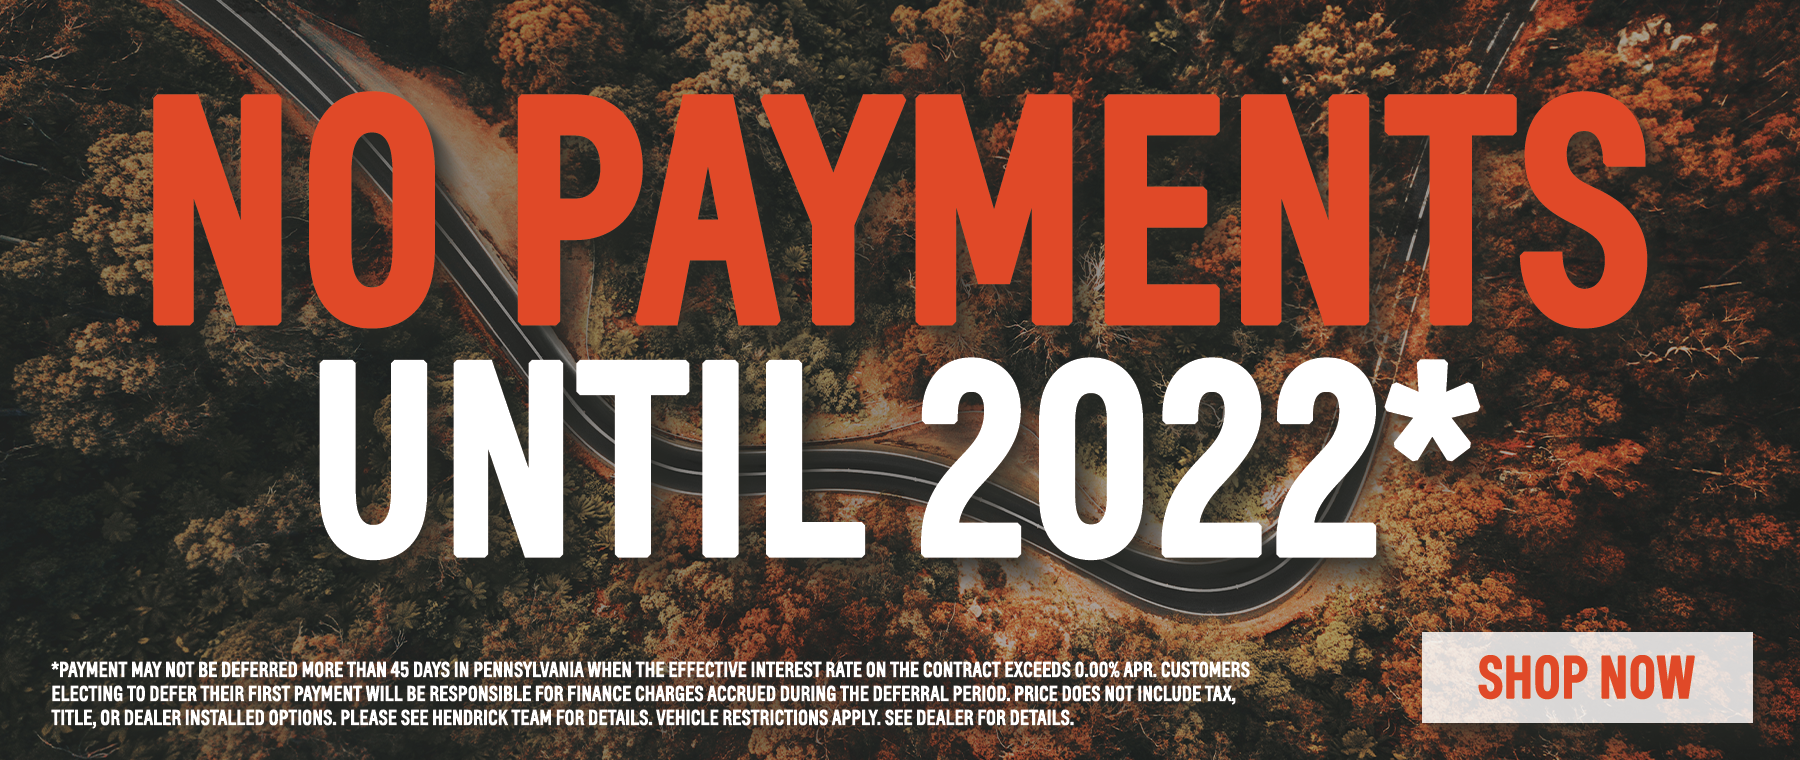 RHChevroletDuluth_Oct21_CW_Offers_1800x760(NoPayment)